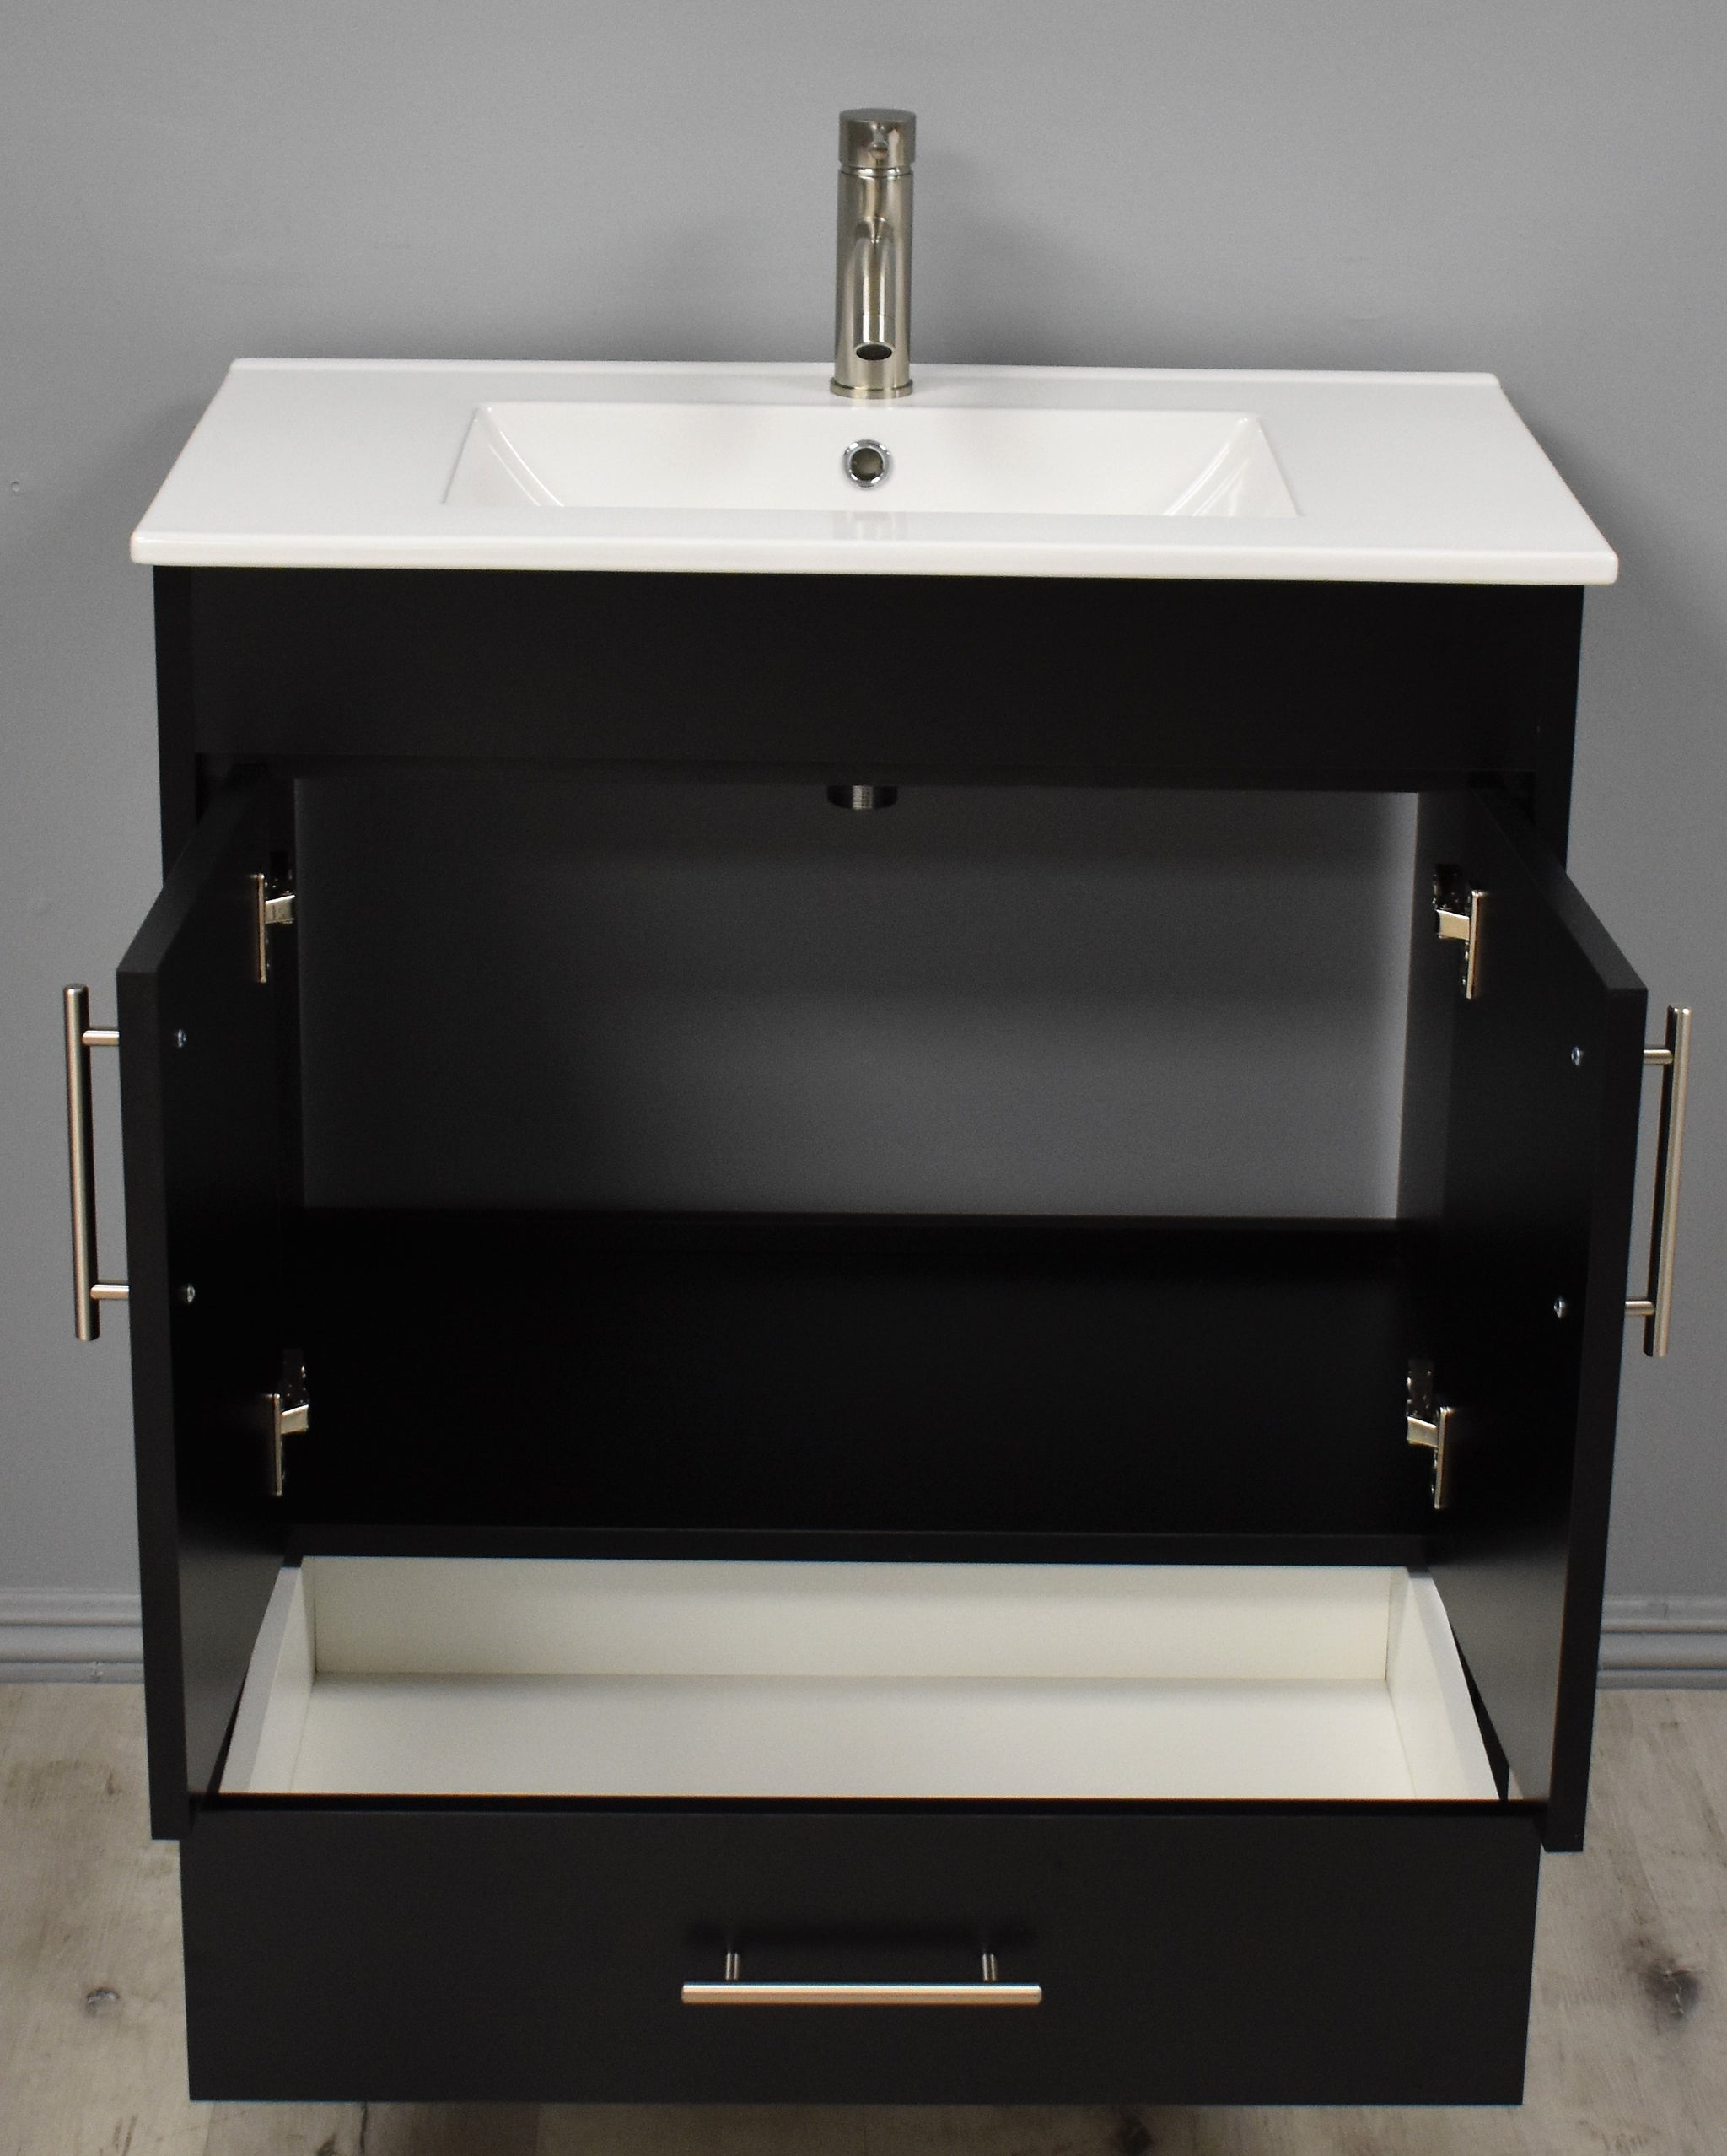 "Pacific 30"" Modern Bathroom Vanity in Black with Integrated Ceramic Top and Brushed Nickel Round Handles"